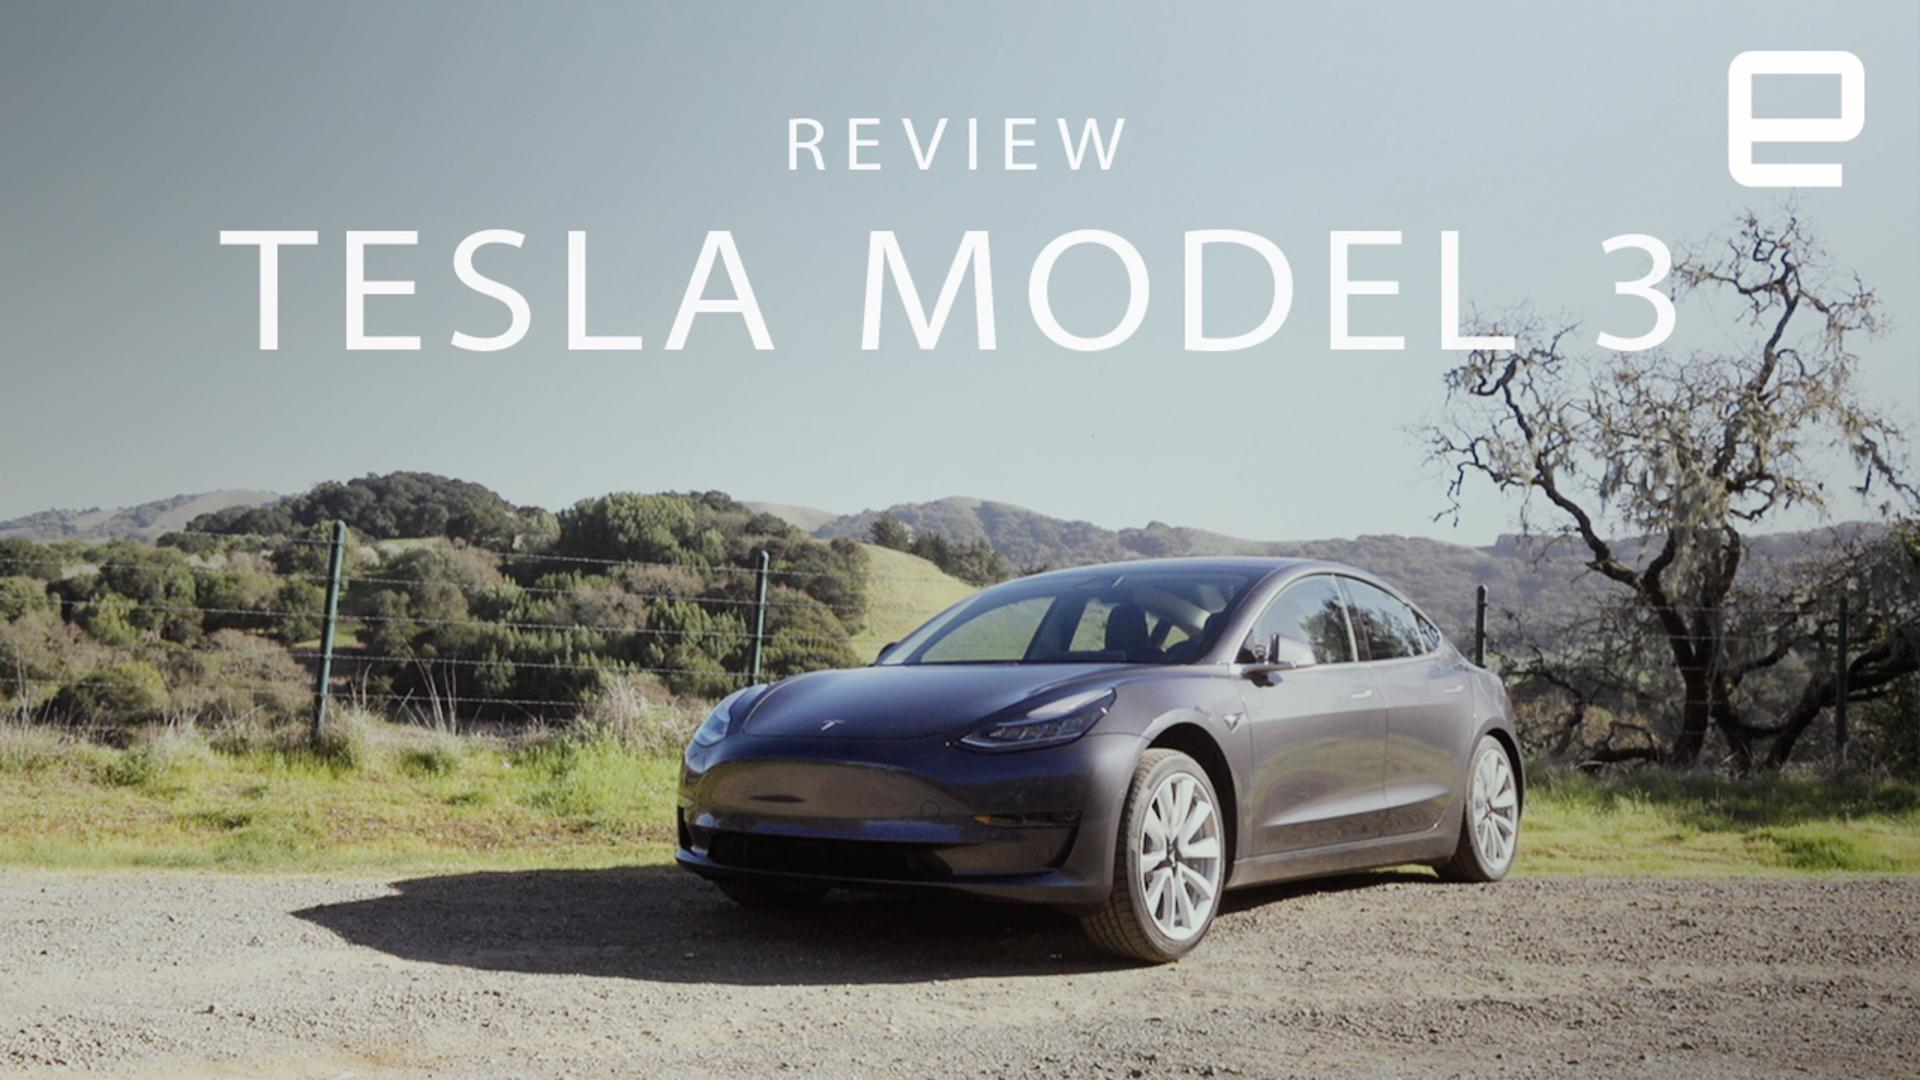 Tesla Model 3 review: the fast and infuriating